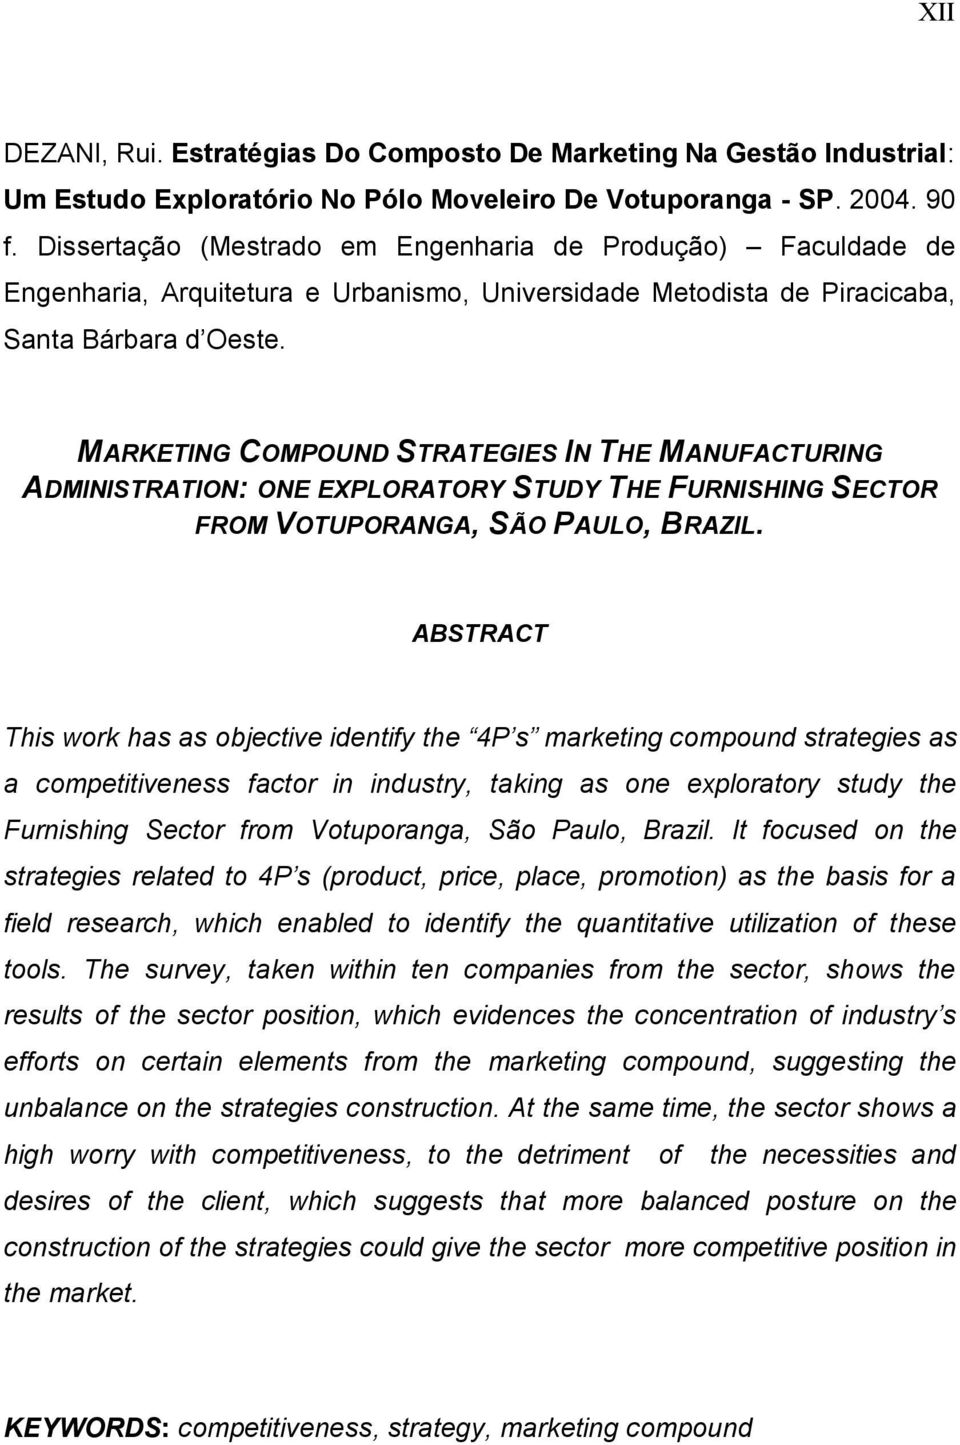 MARKETING COMPOUND STRATEGIES IN THE MANUFACTURING ADMINISTRATION: ONE EXPLORATORY STUDY THE FURNISHING SECTOR FROM VOTUPORANGA, SÃO PAULO, BRAZIL.